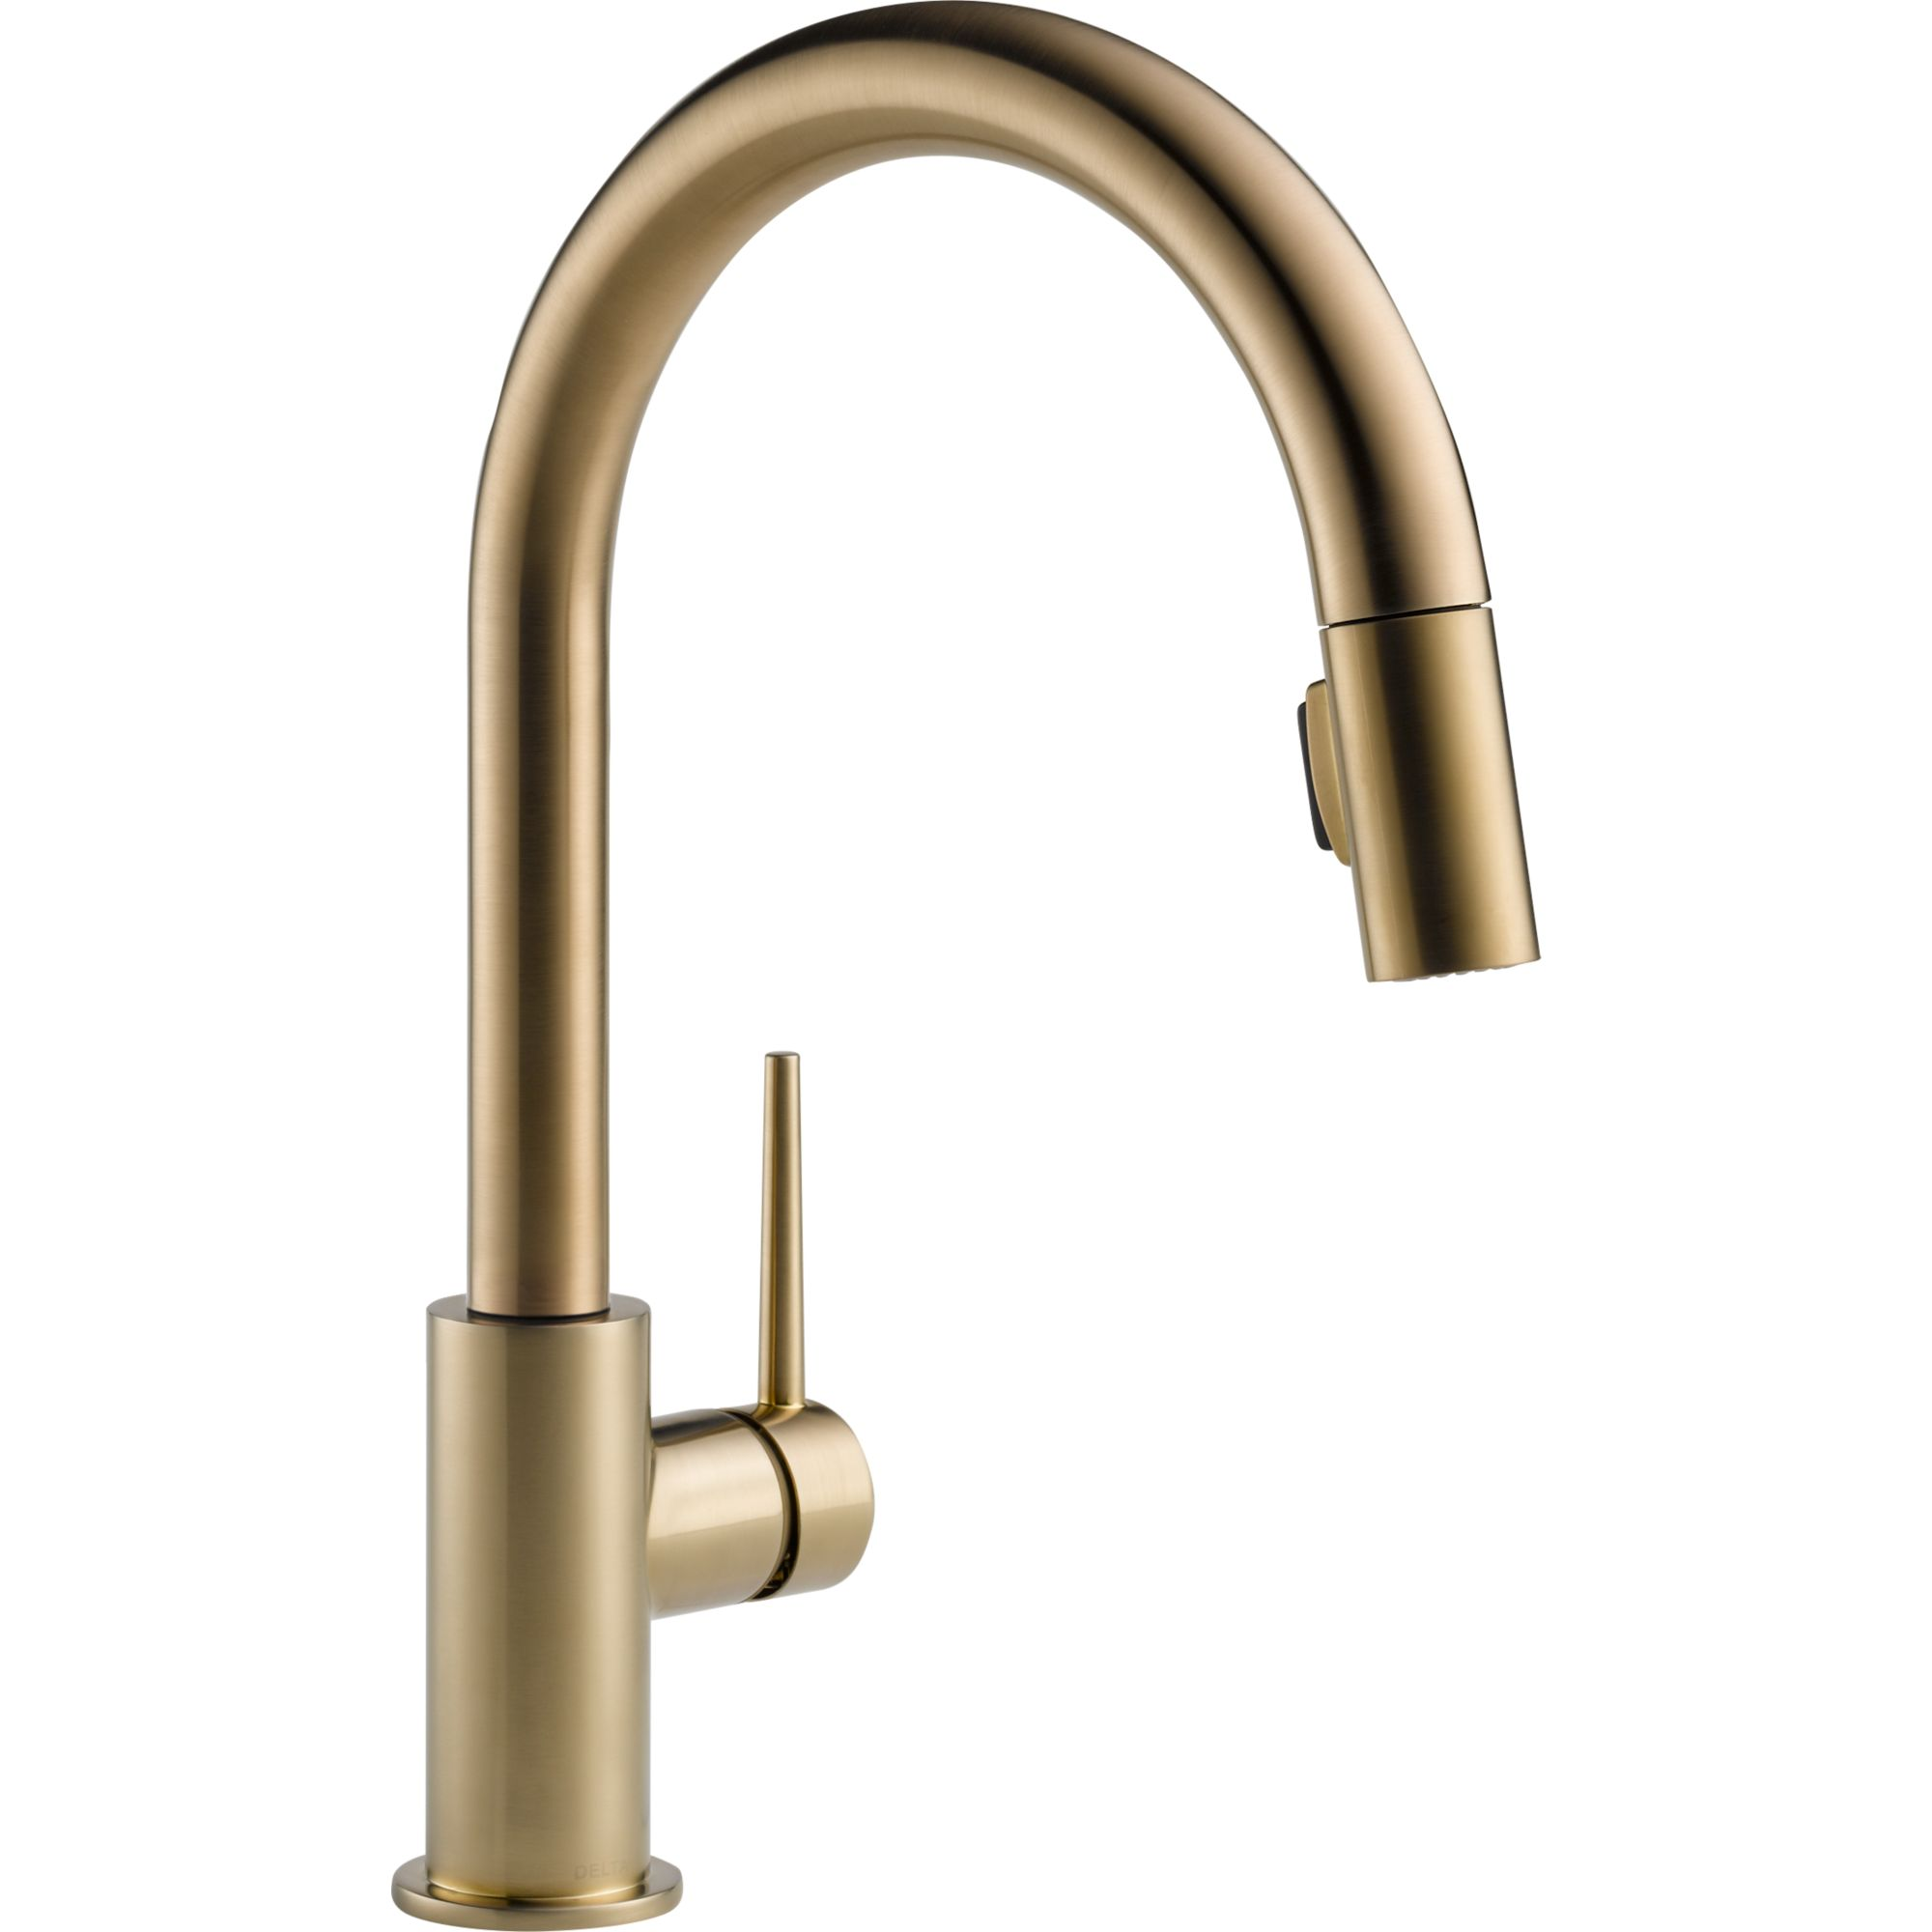 champagne home brass faucets photos modern delta gallery of bronze kitchen faucet decor affordable image